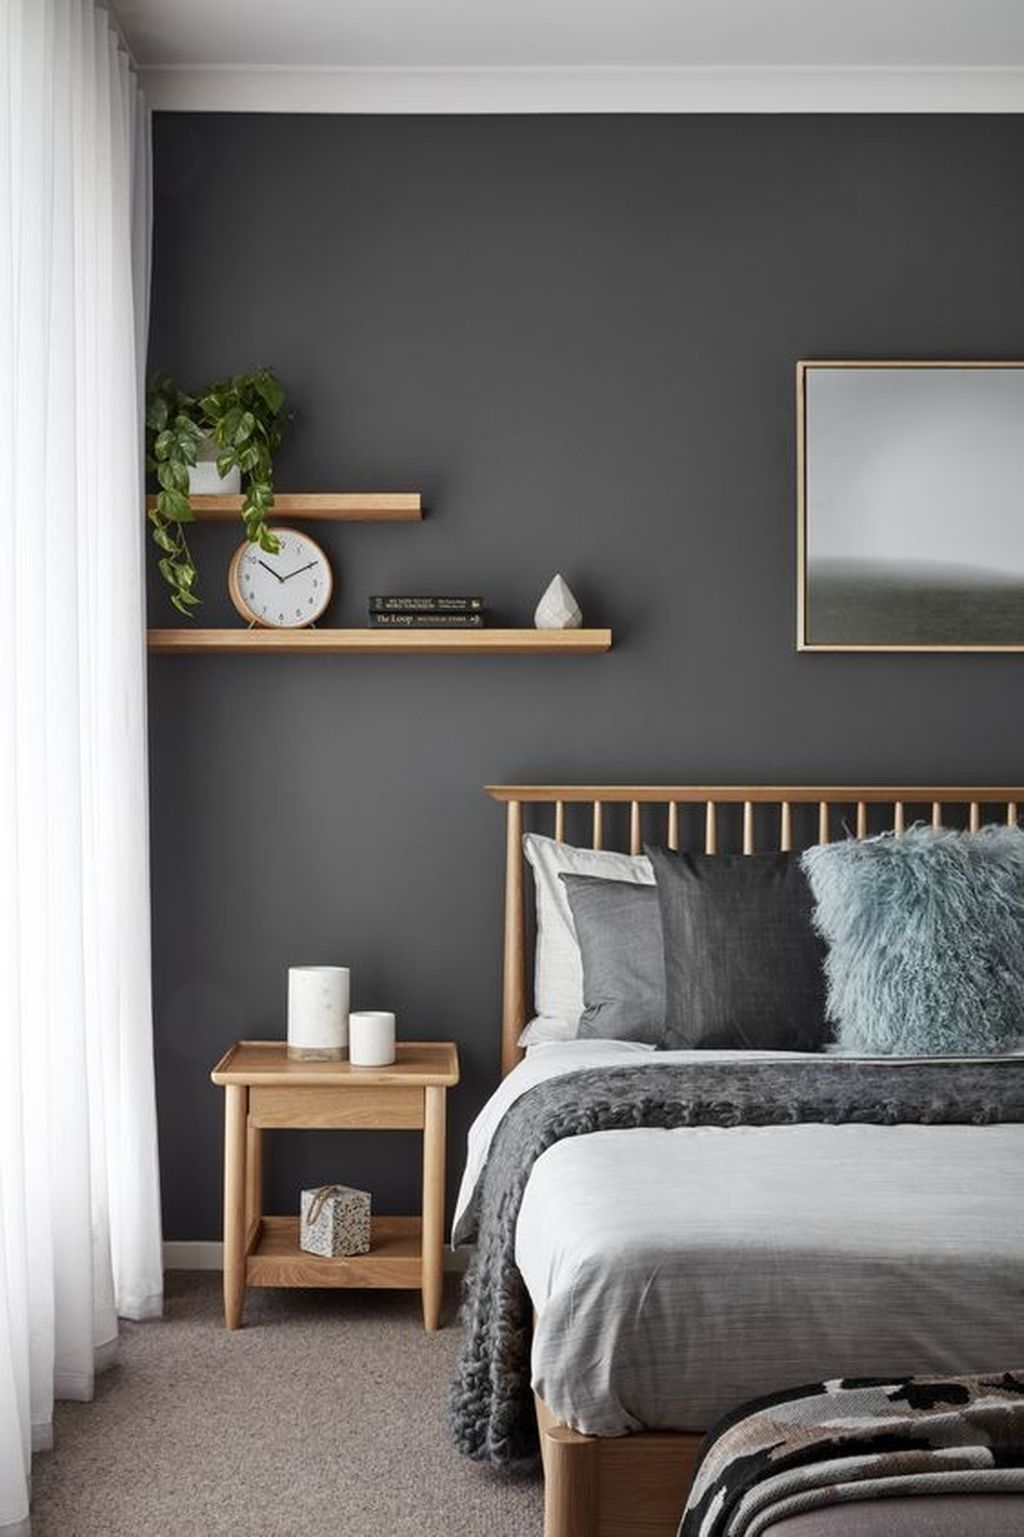 20 Perfect Small Bedroom Design That Maximizes Style And Efficiency Bedroom Decor Bedroom Wall Colors Small Bedroom Decor Great inspiration small bedroom